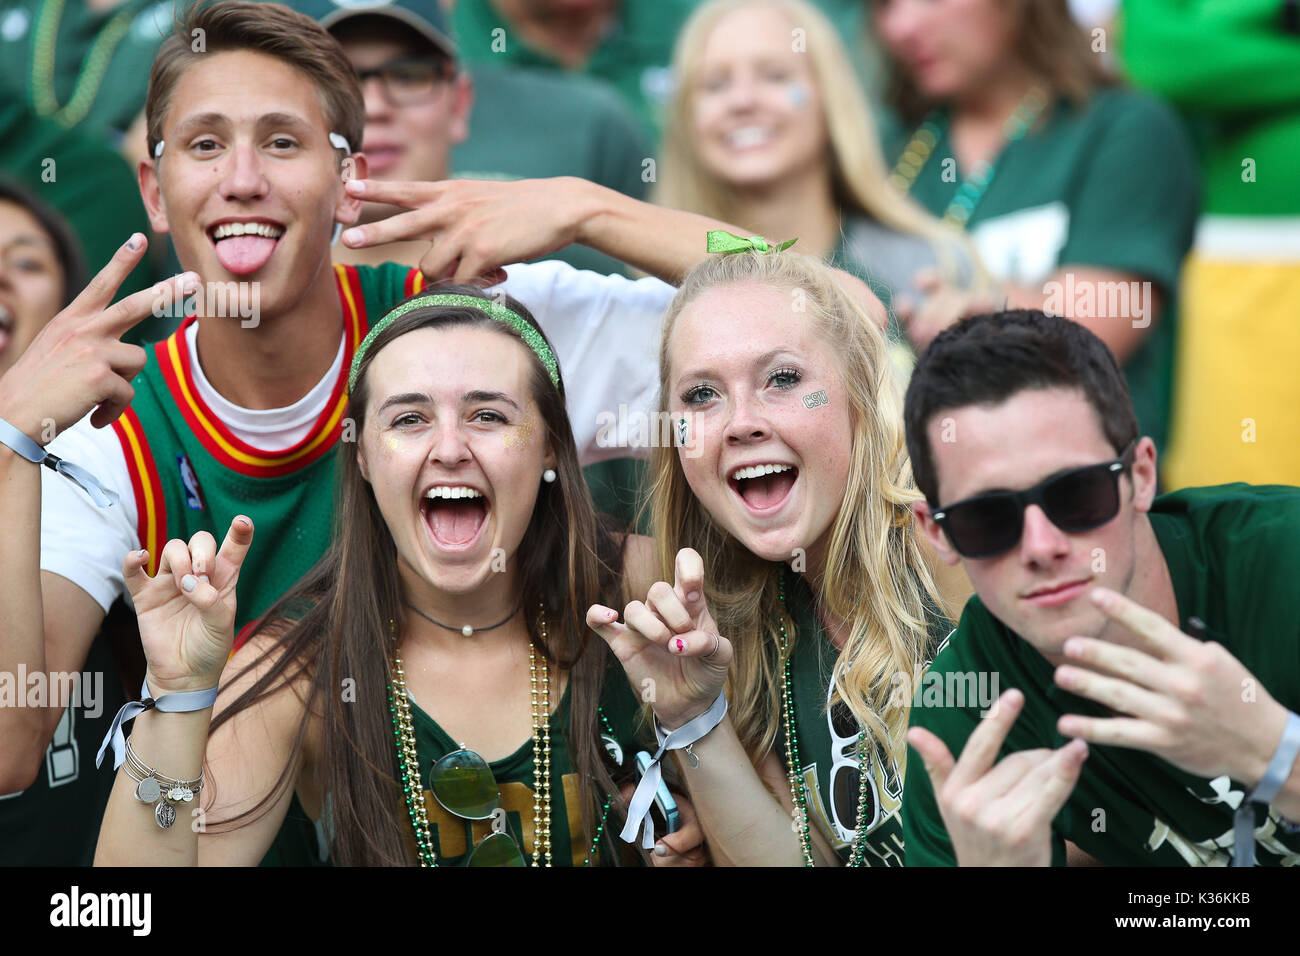 September 01, 2017: Colorado State fans urge on their team during the Rocky Mountain Showdown in Denver against Coloradoo. - Stock Image